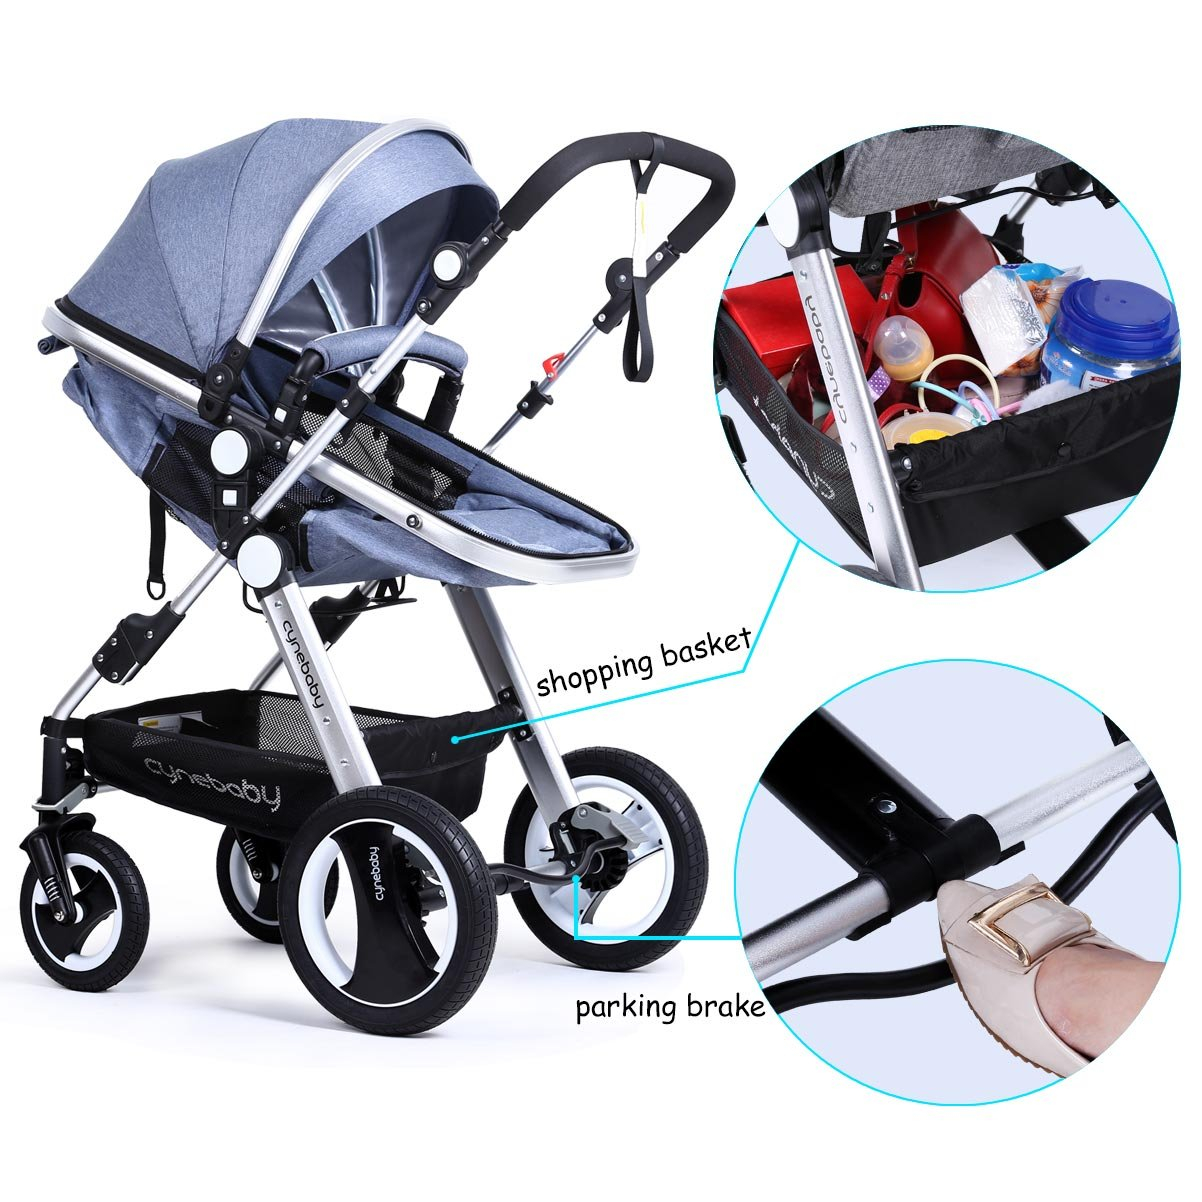 Infant Baby Stroller Toddler Carriage - Cynebaby Folding Pram Bassinet Strollers with Cup Holder (blue) by cynebaby (Image #4)